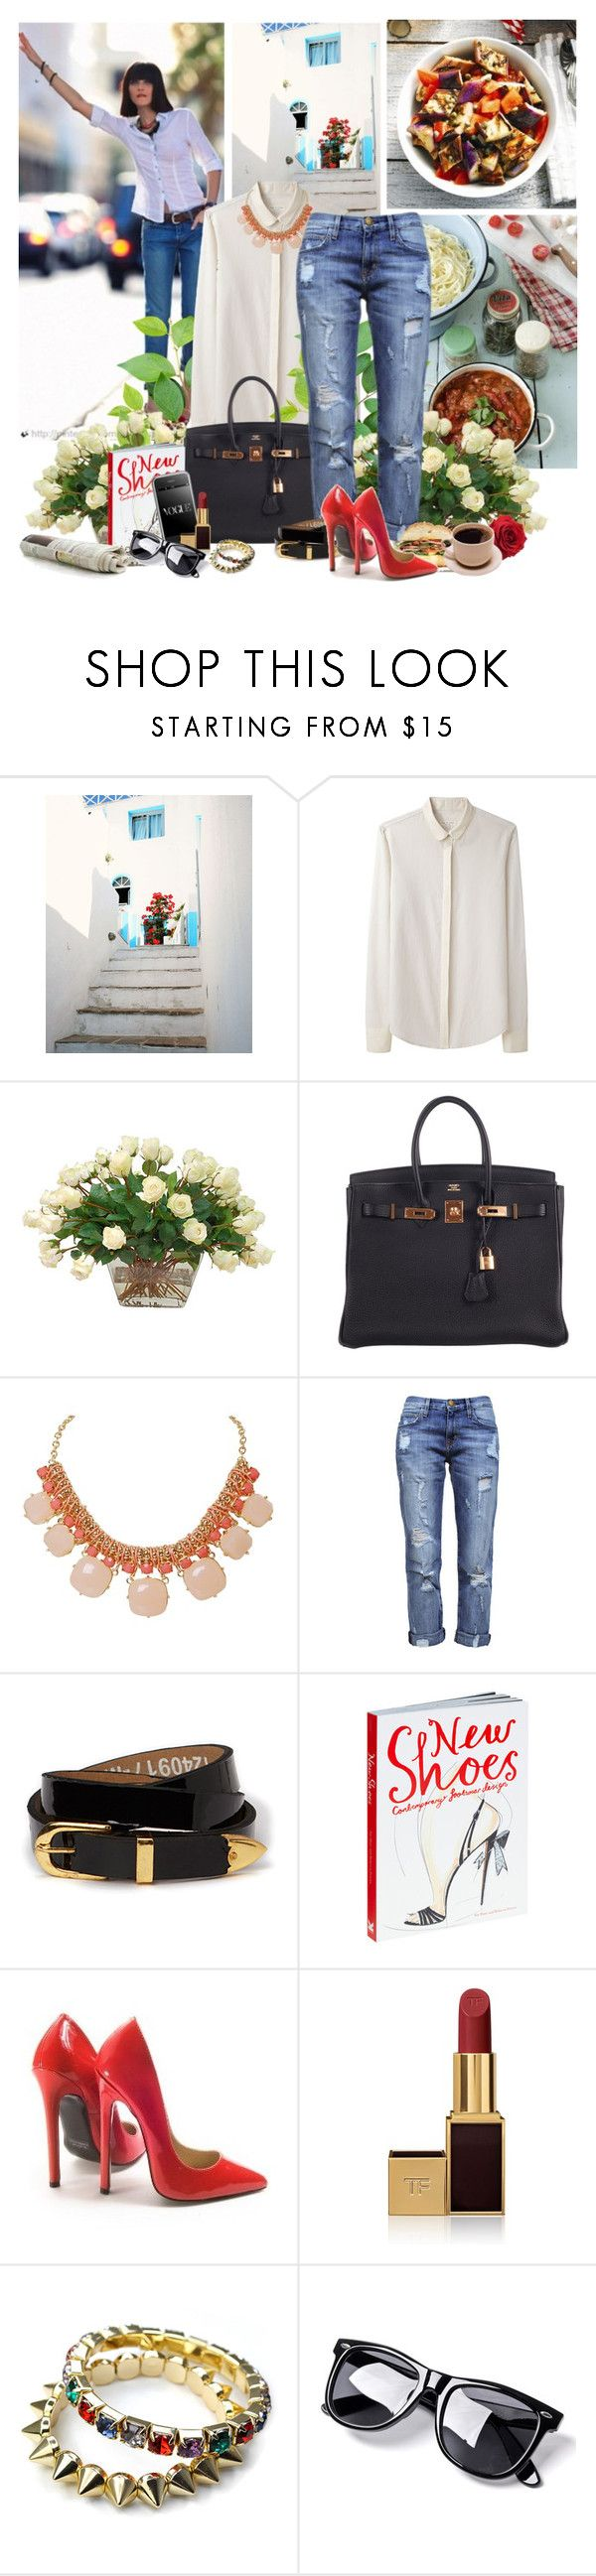 """""""Do More Of What Makes You Happy"""" by seemstobe ❤ liked on Polyvore featuring rag & bone, The French Bee, Hermès, Humble Chic, Current/Elliott, Friis & Company, Tom Ford and kitchen"""